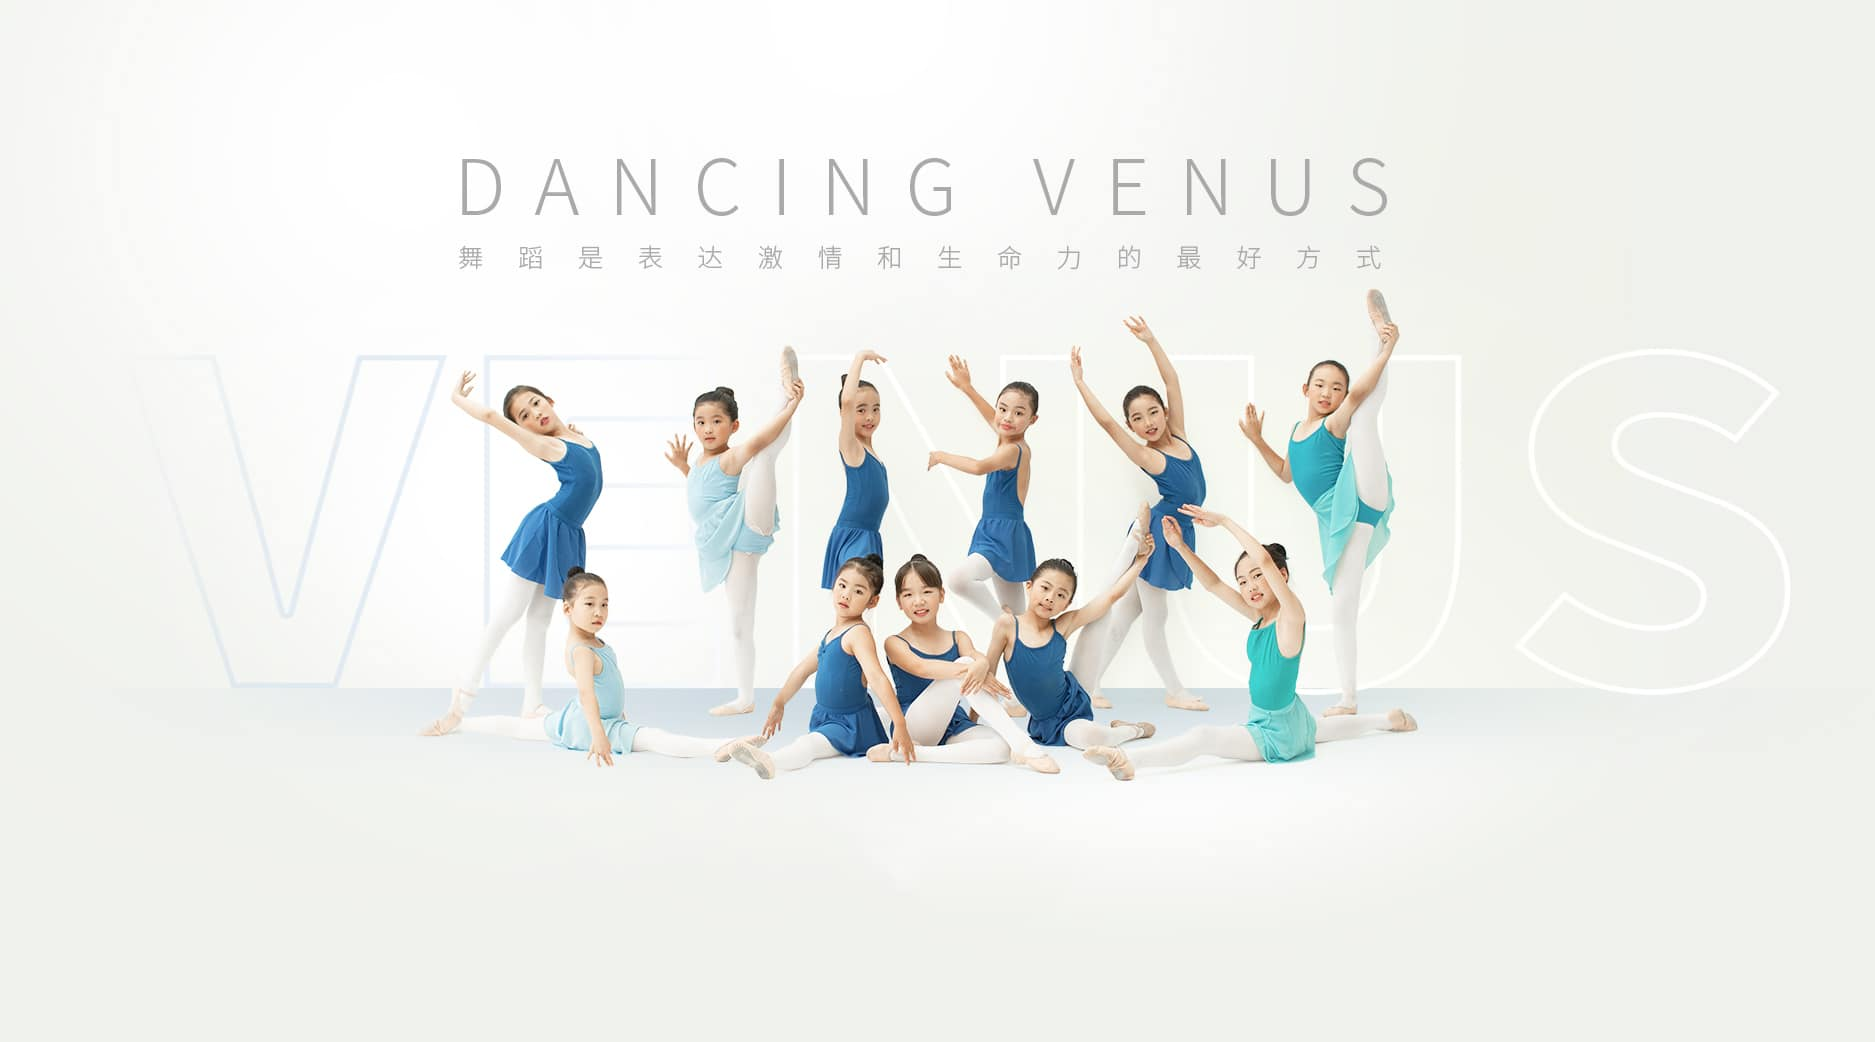 Venus Art Melbourne Dance School Heading Image